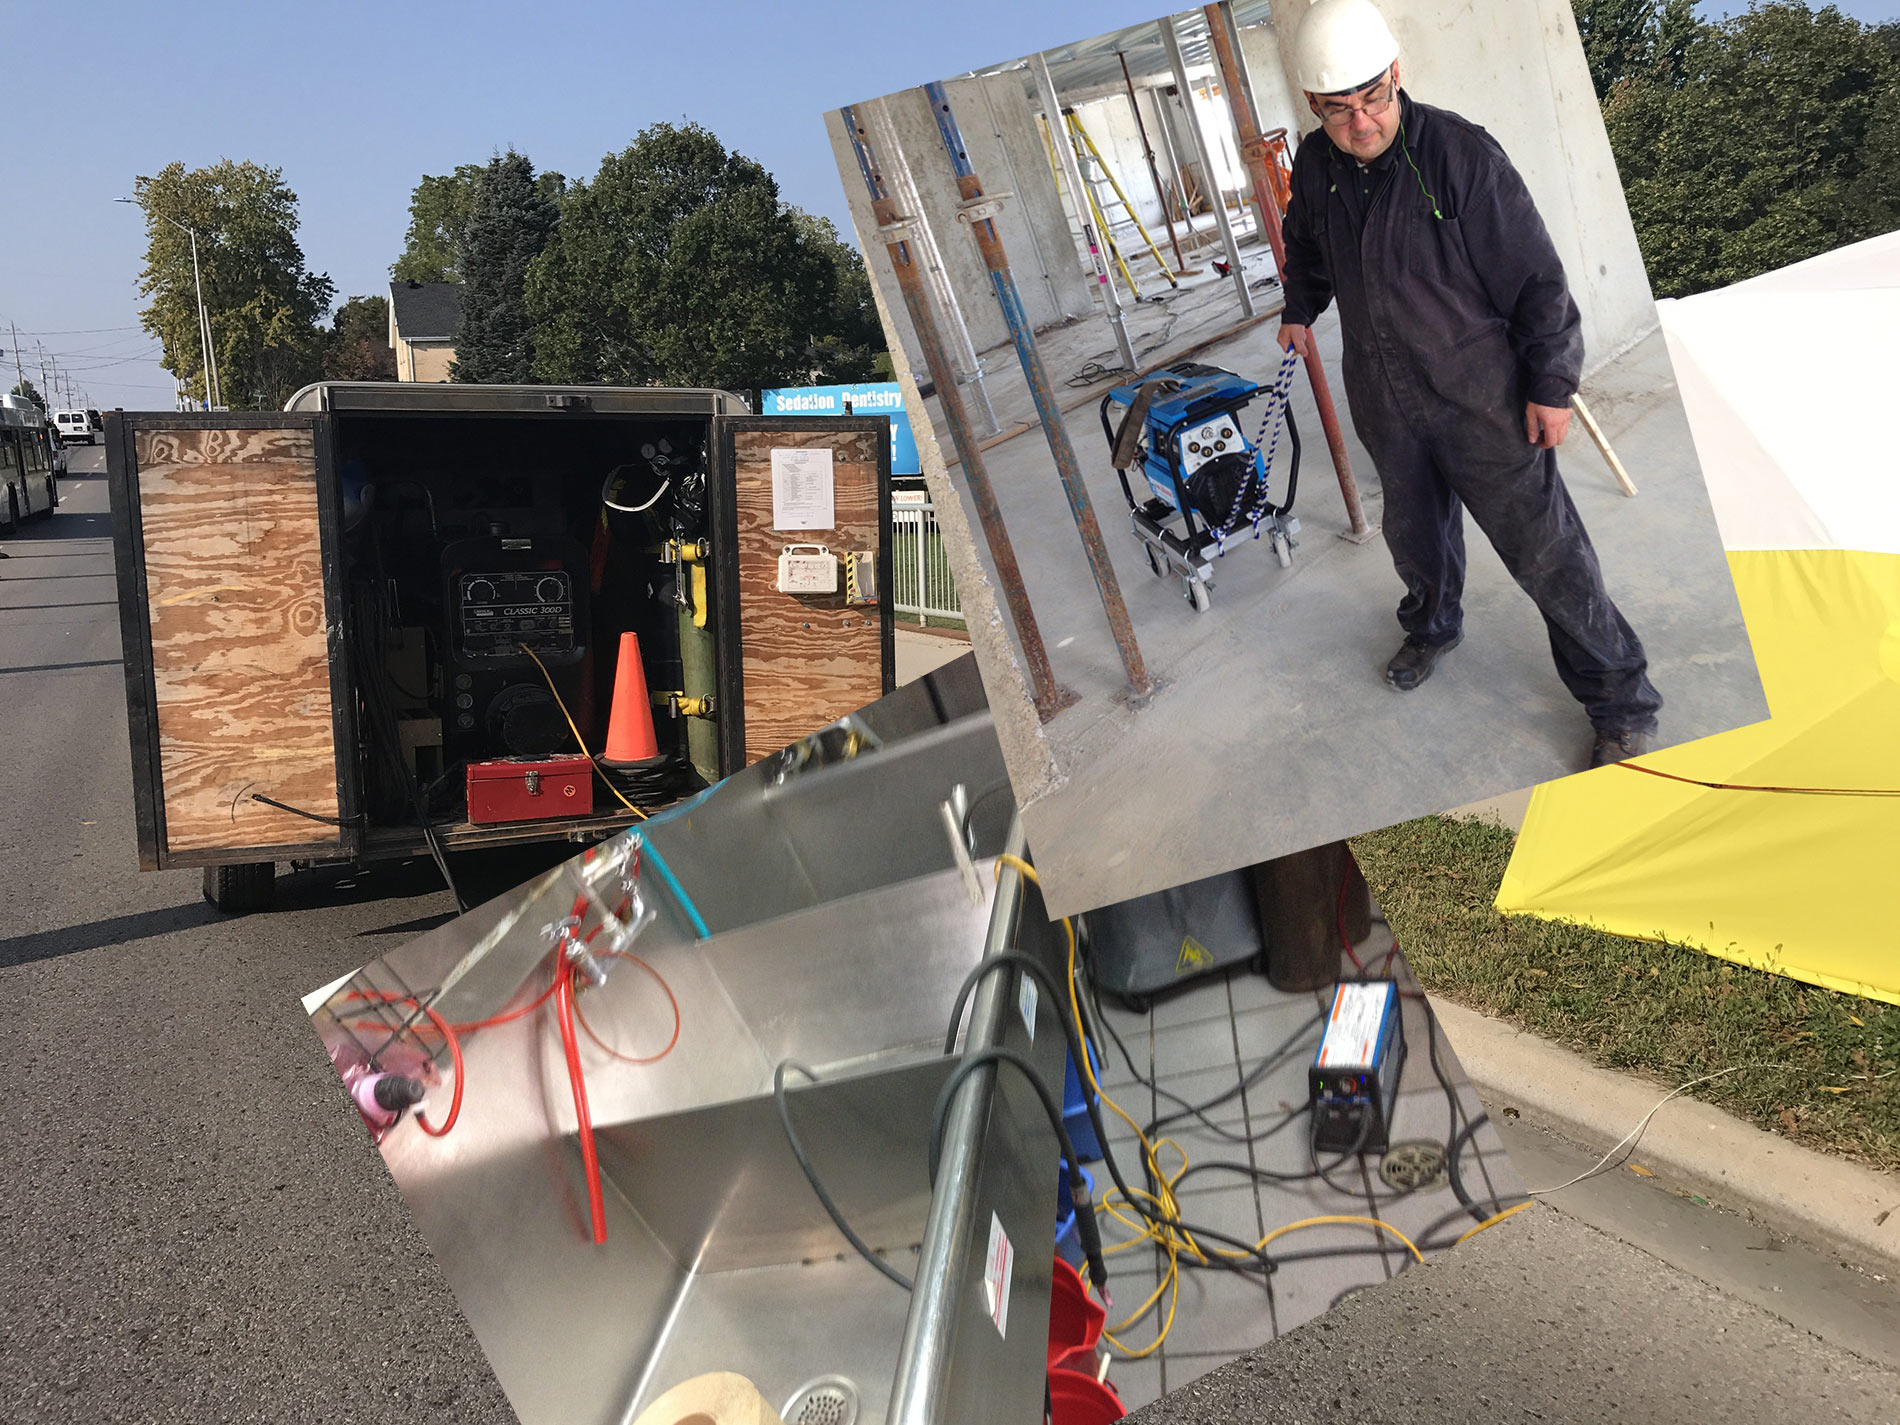 Show multiple versions of mobile welding by JW Portable Welding & Repairs